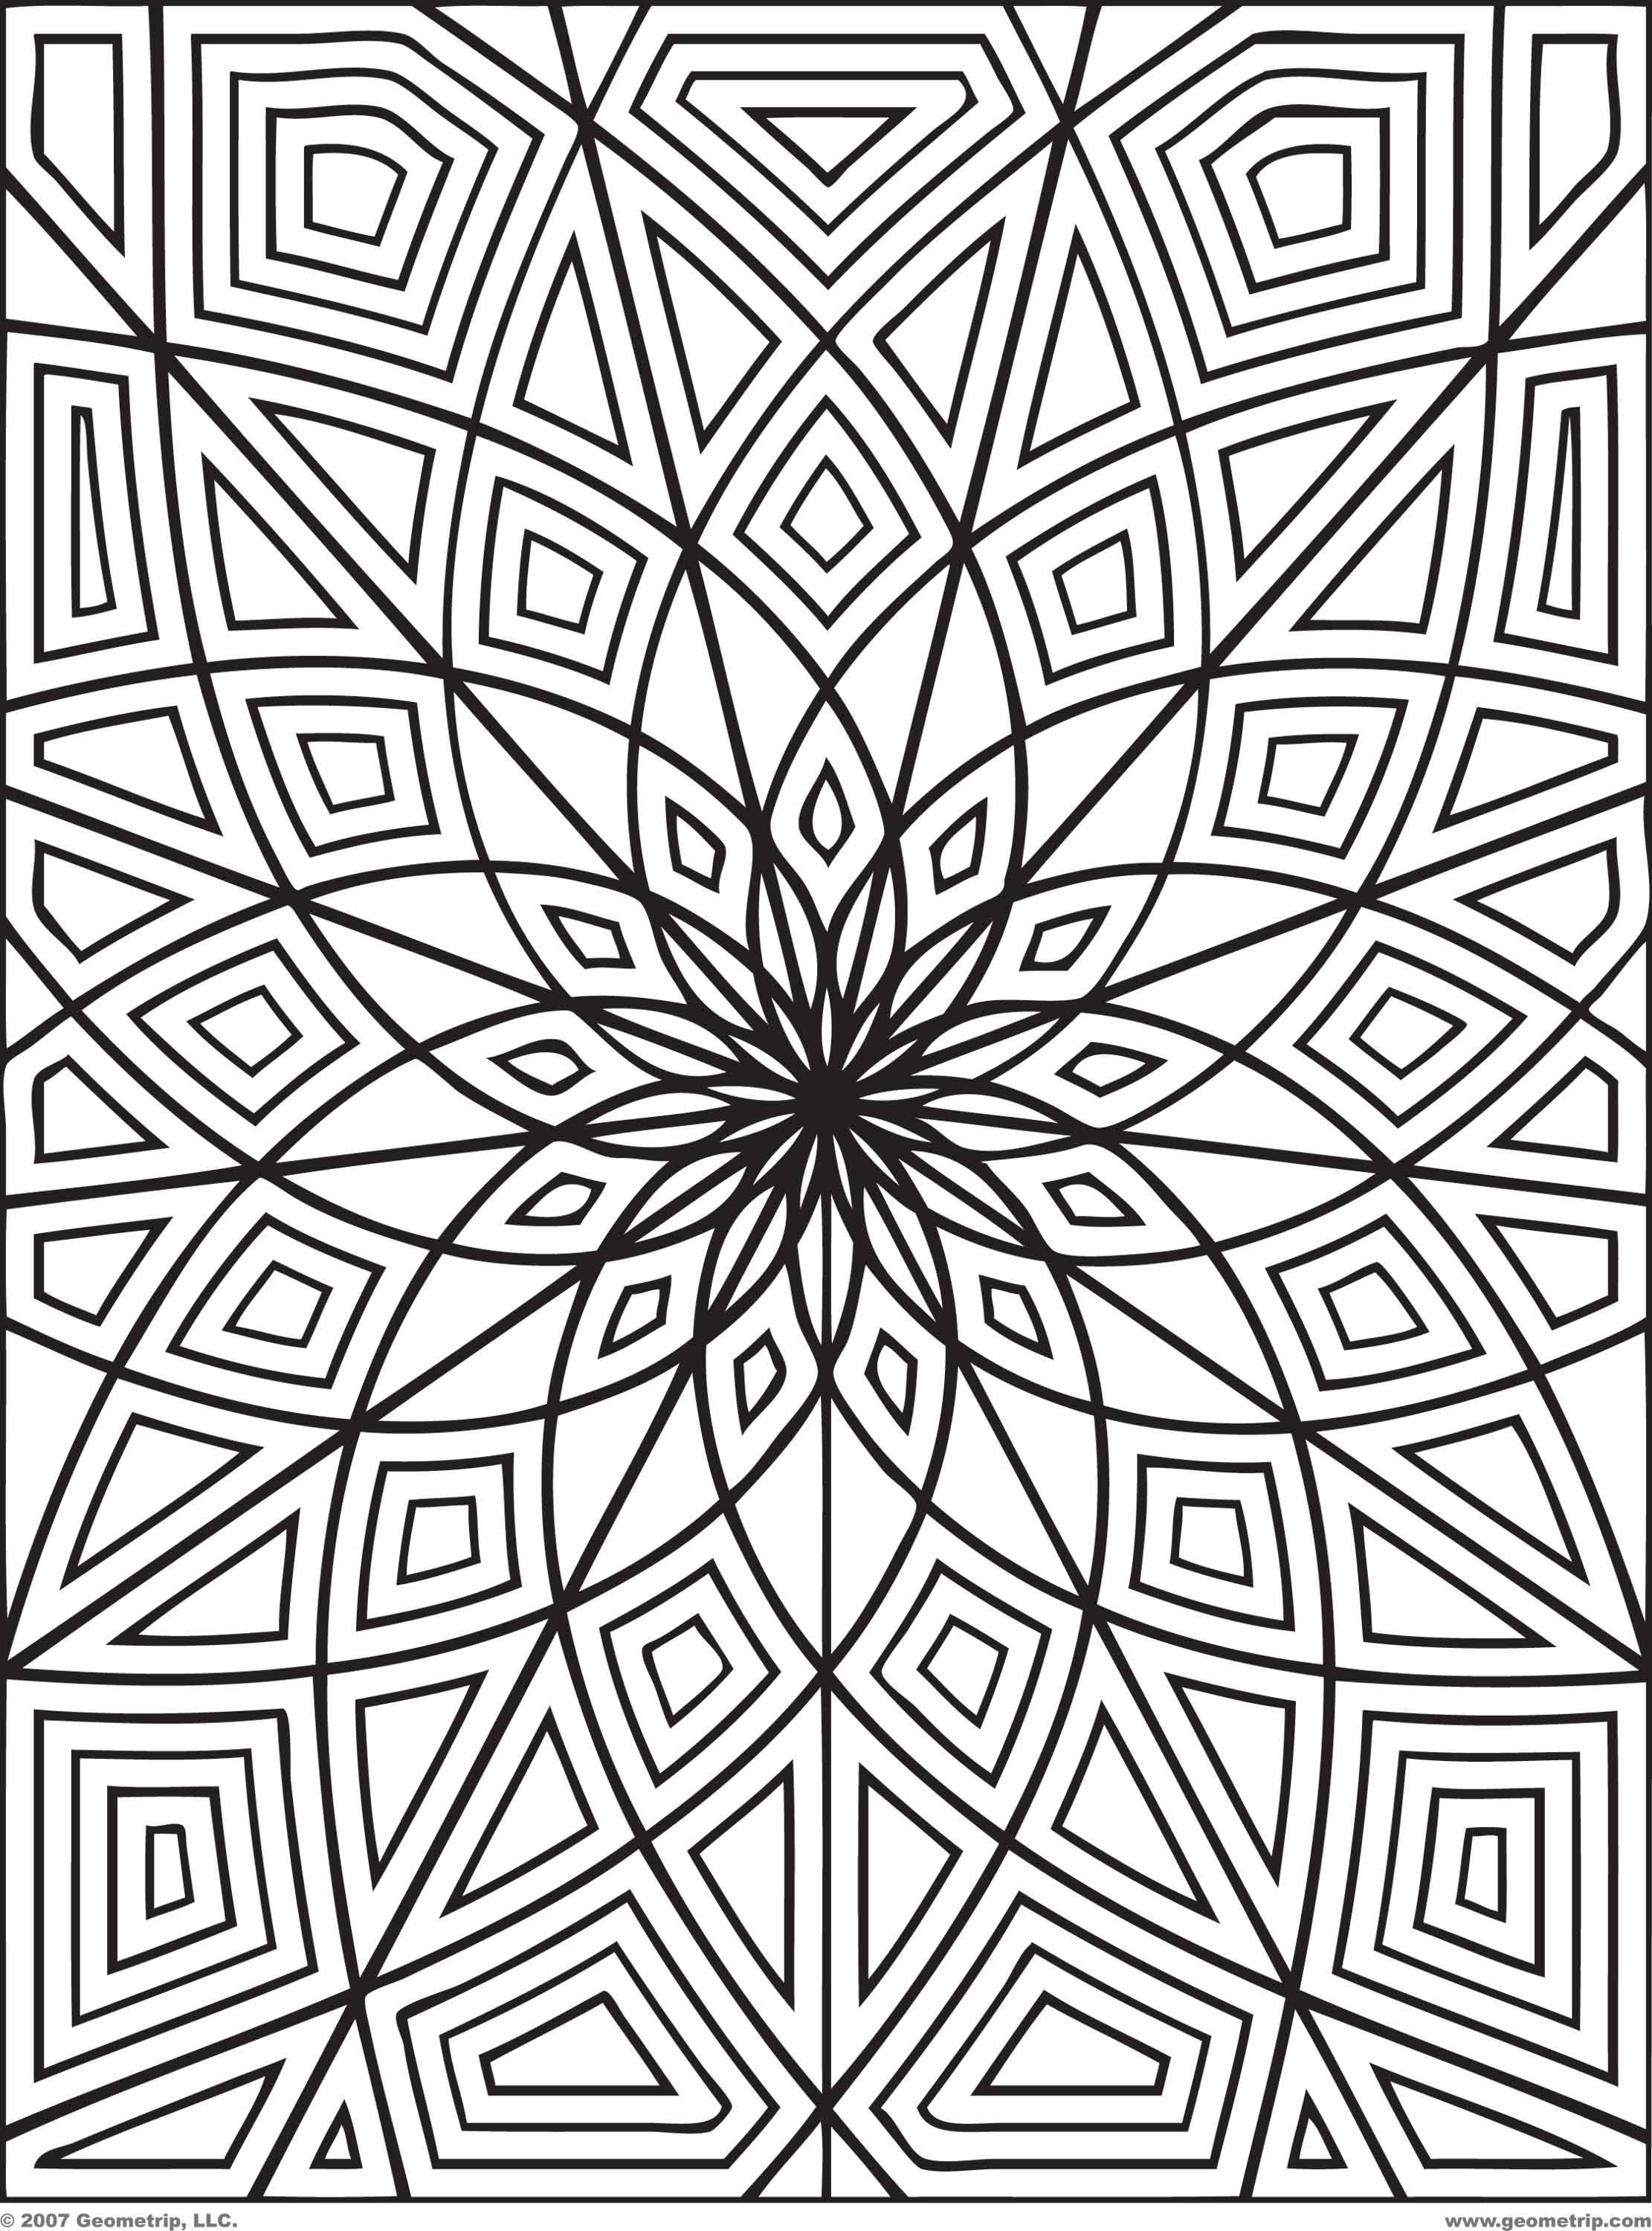 Coloring Pages For Adults Geometric Coloring Pages Abstract Coloring Pages